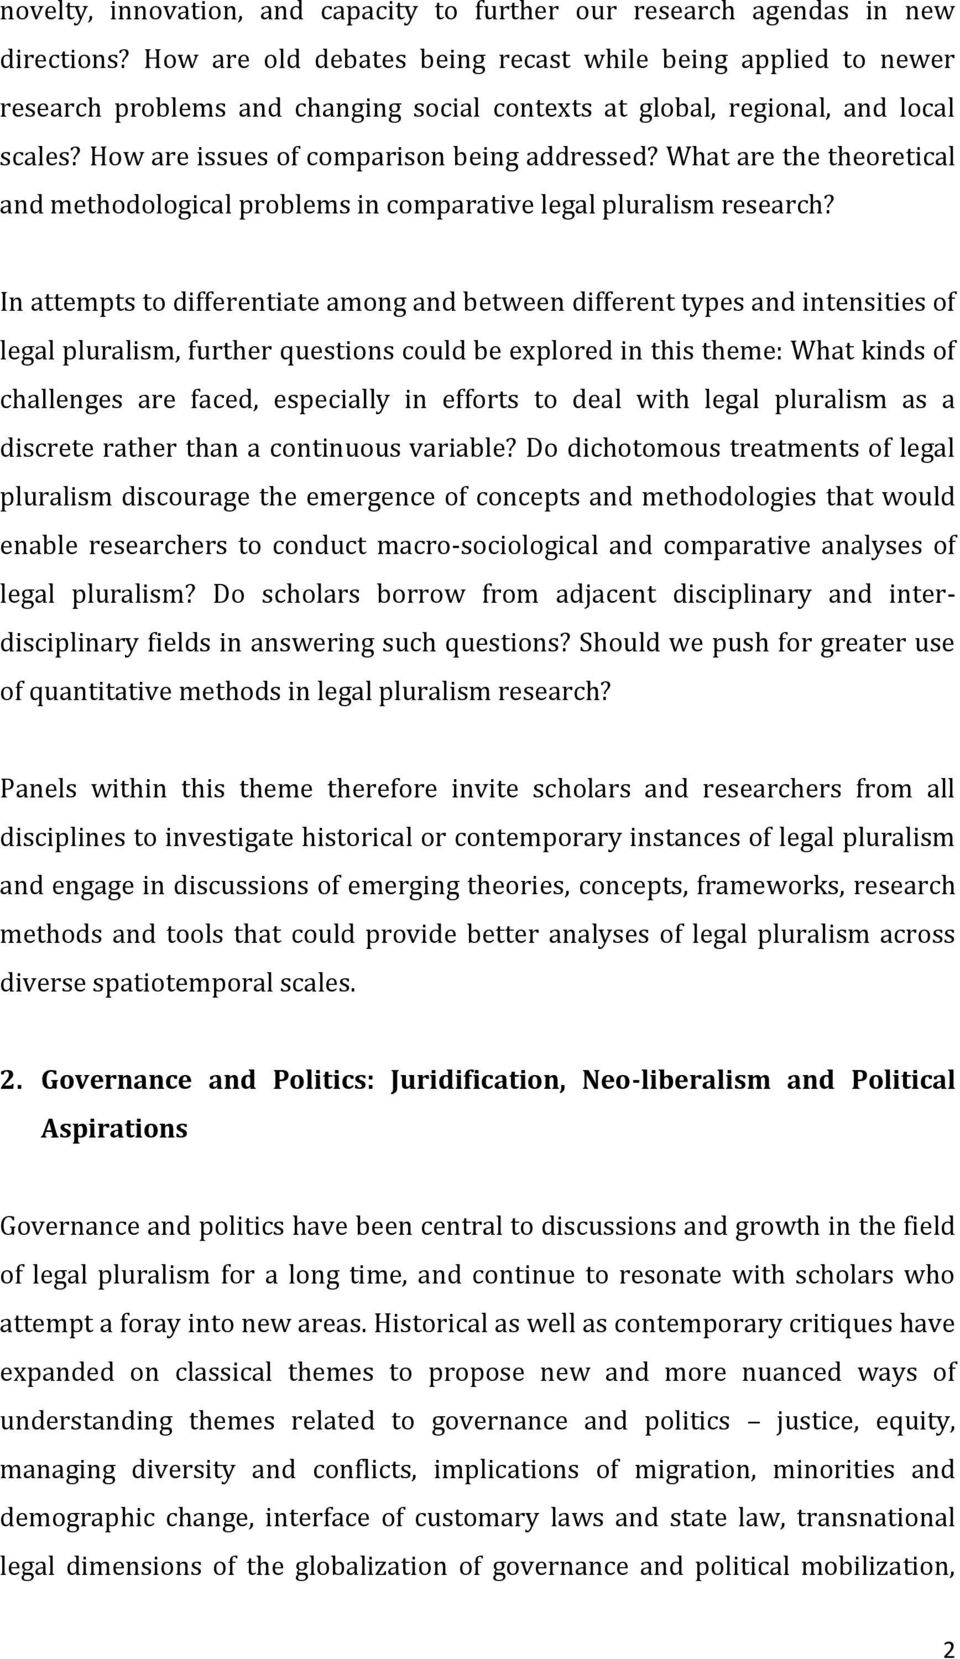 What are the theoretical and methodological problems in comparative legal pluralism research?